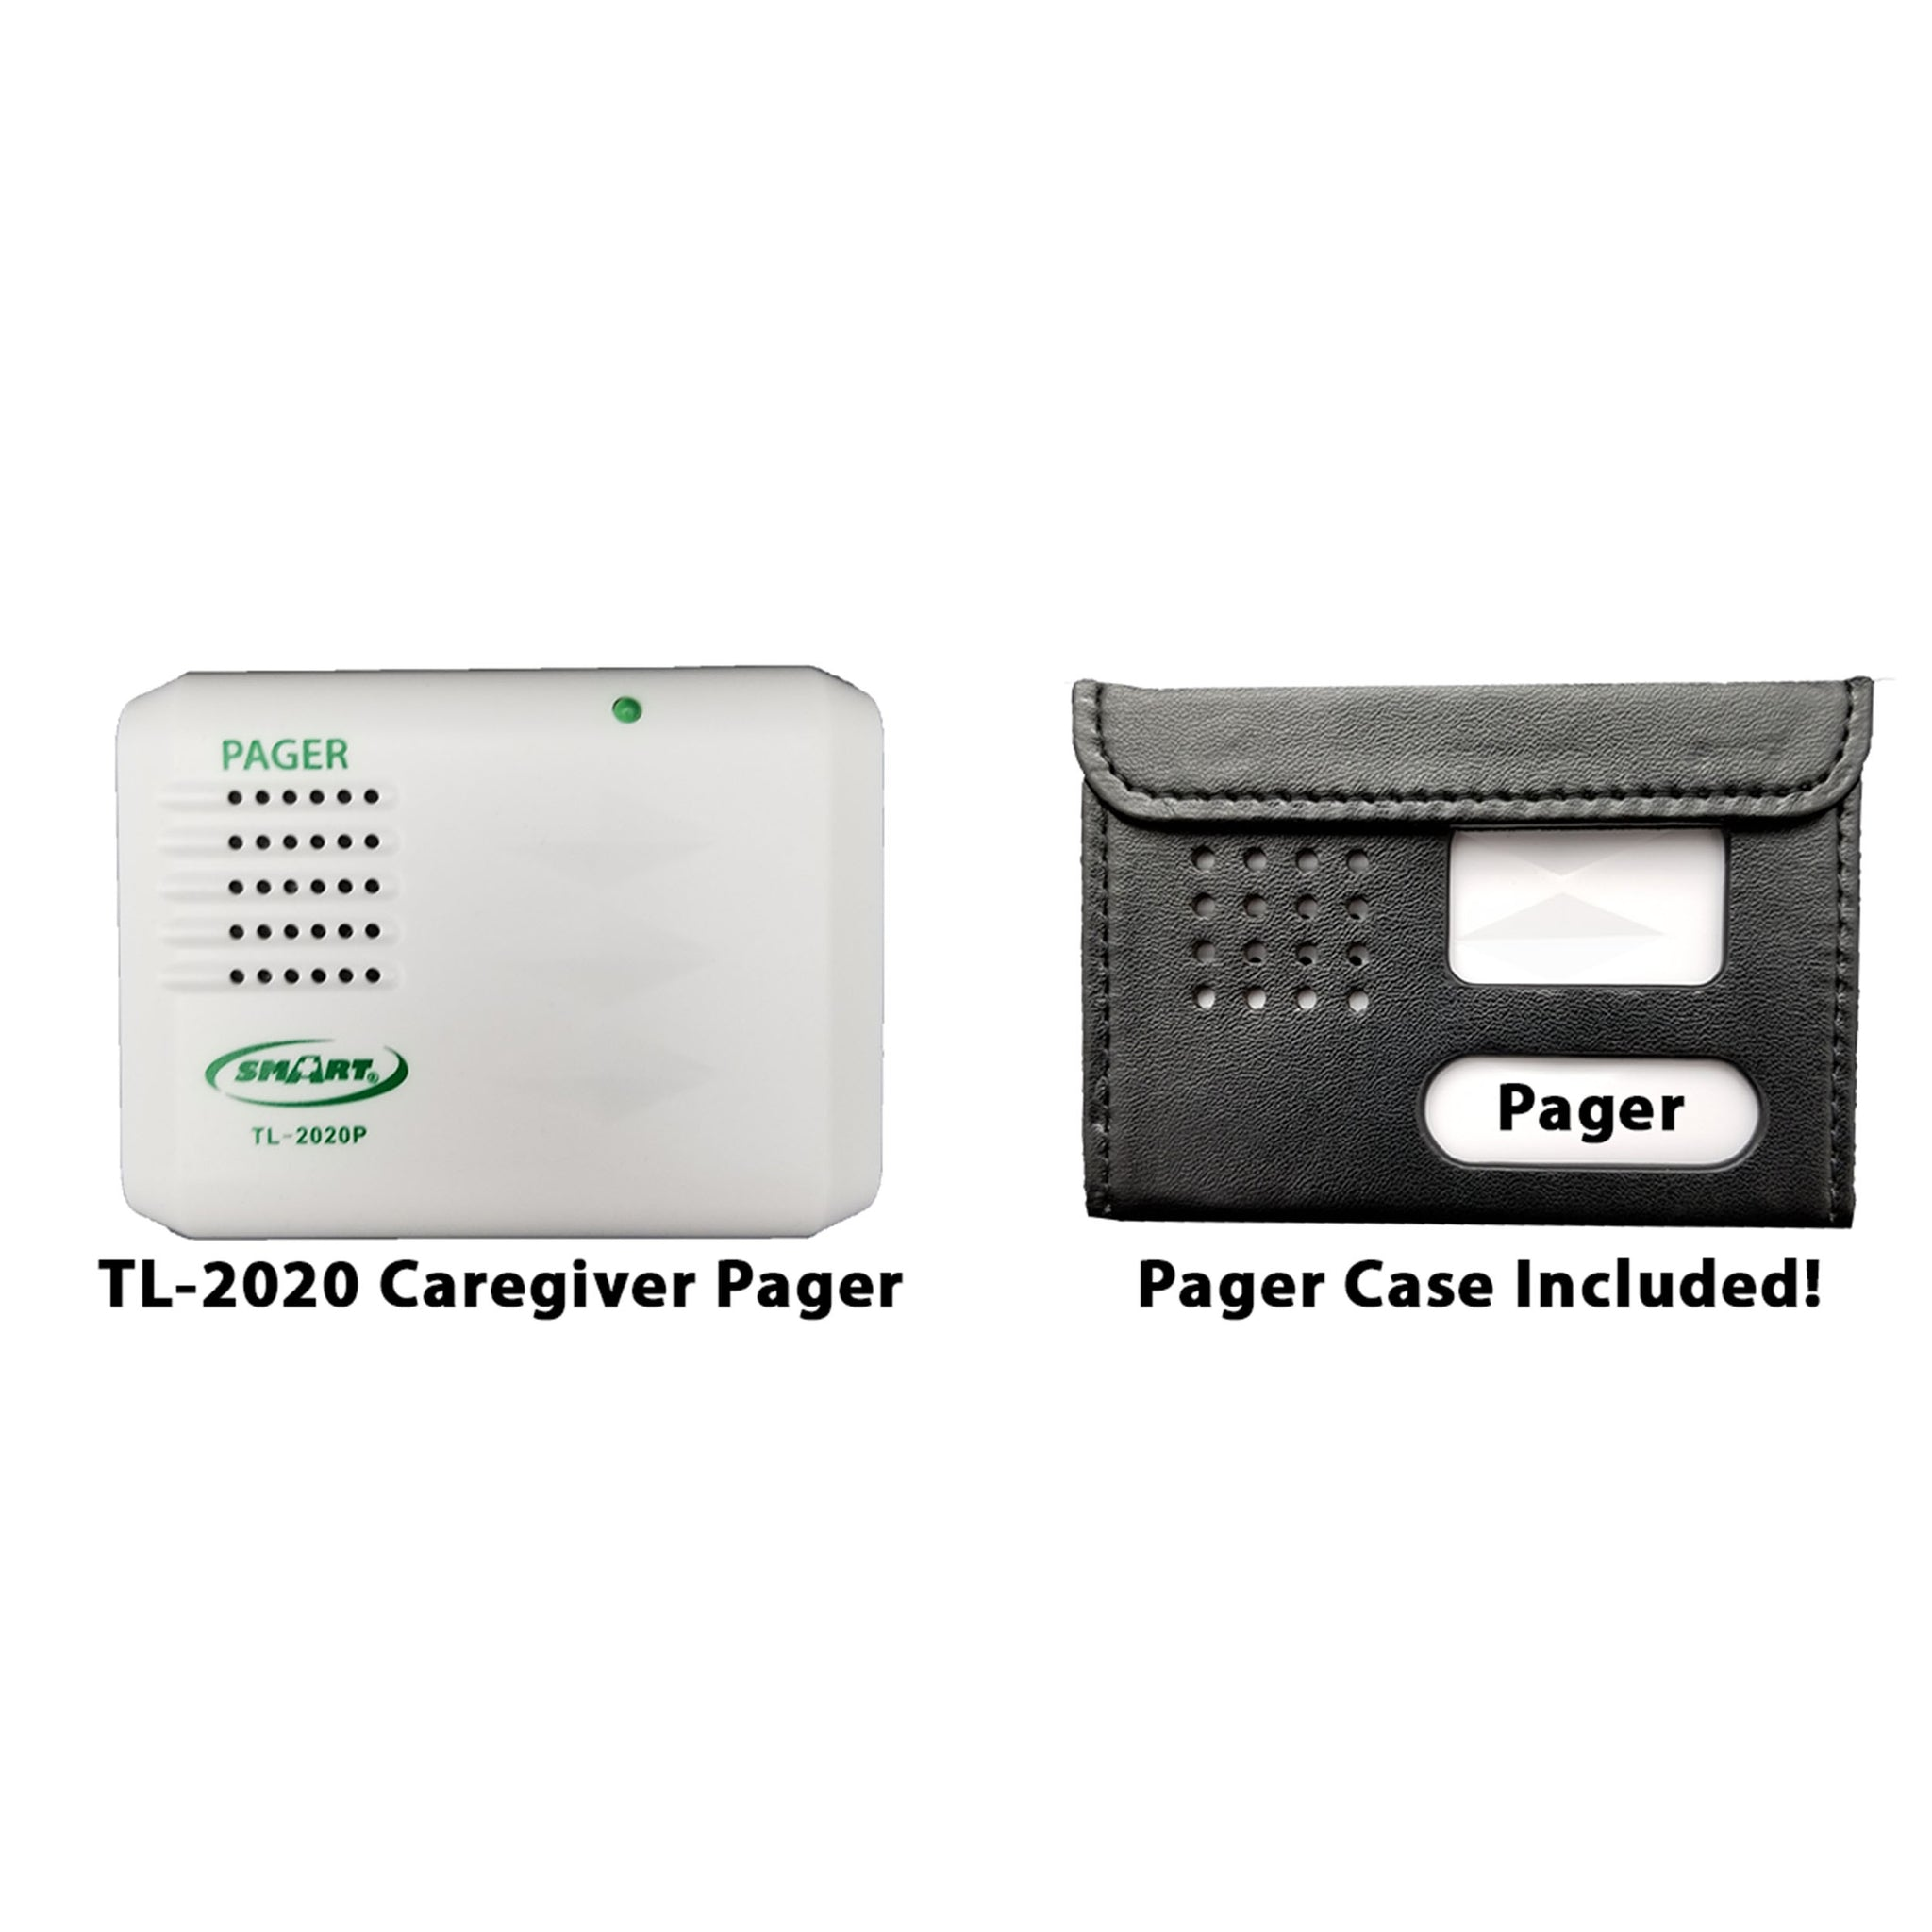 Smart Caregiver Wireless Economy Pager for the Wireless Economy Quiet Fall Prevention Alert